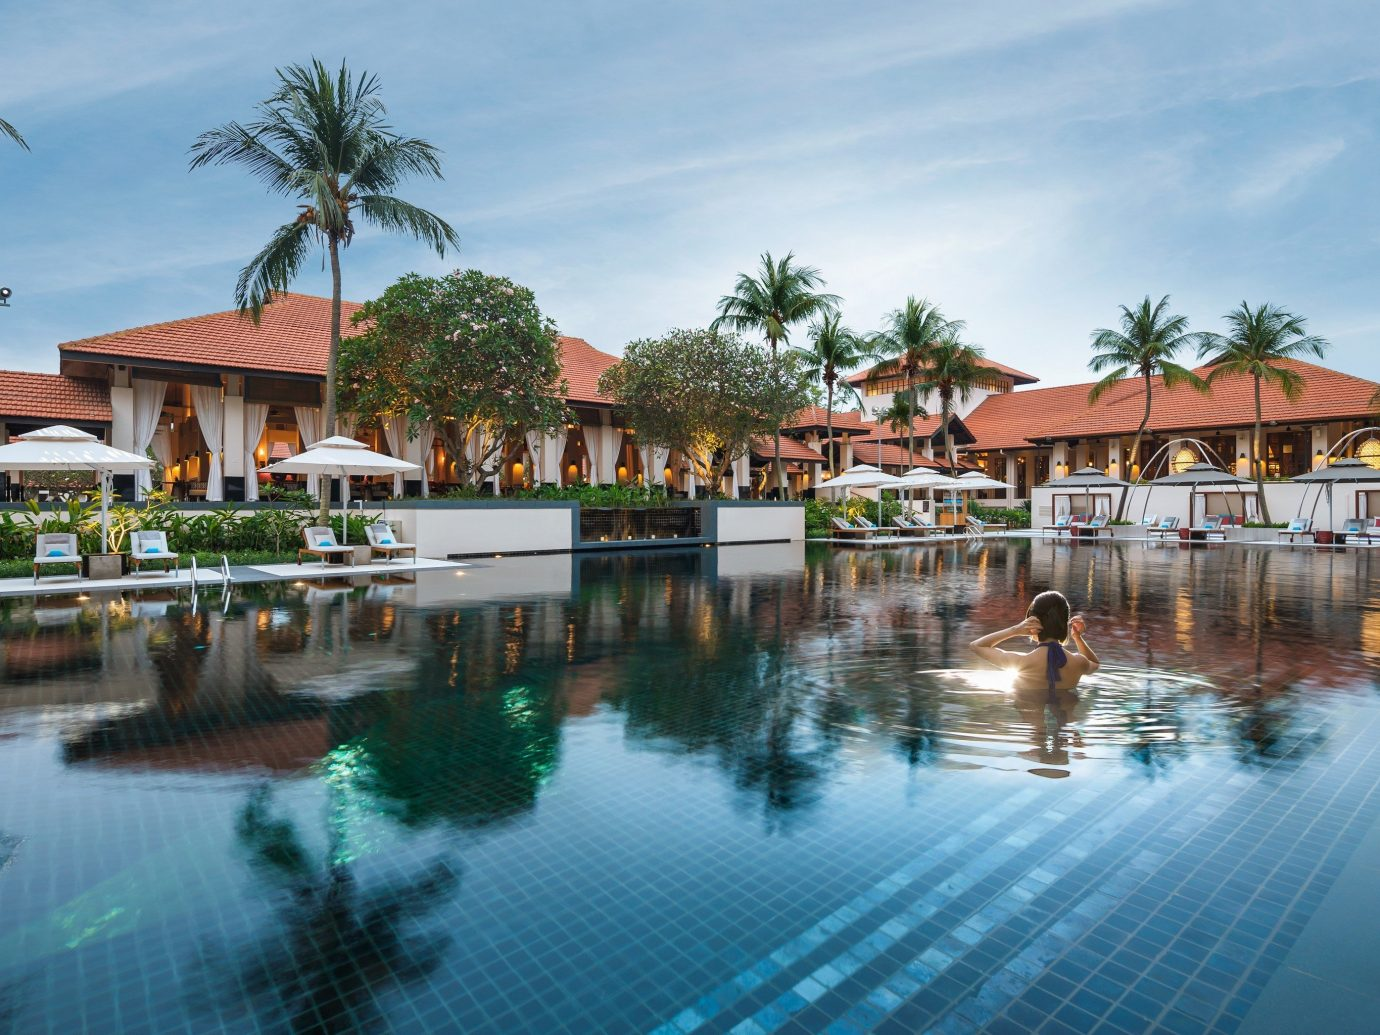 Hotels outdoor water tree sky house swimming pool leisure Resort property estate vacation resort town condominium marina surrounded Town lined several swimming Island